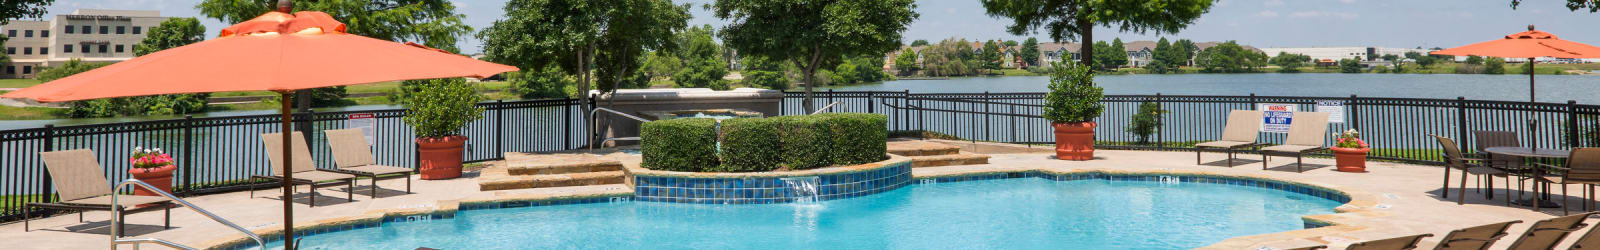 Privacy policy at Crescent Cove at Lakepointe in Lewisville, Texas